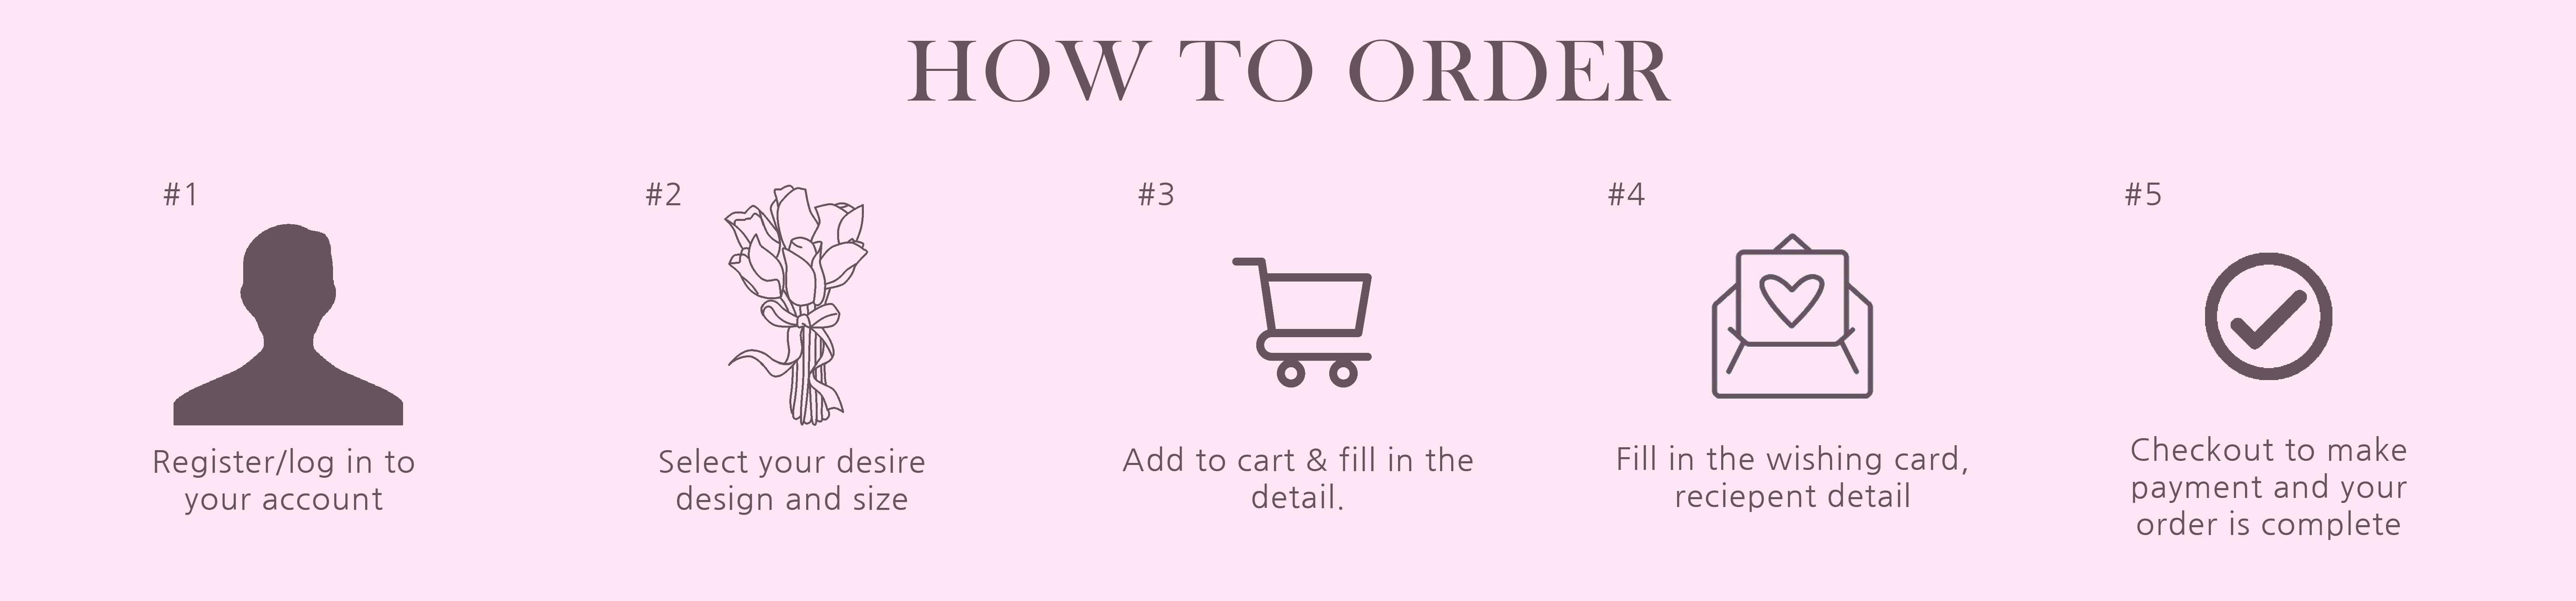 how to order-01.jpg